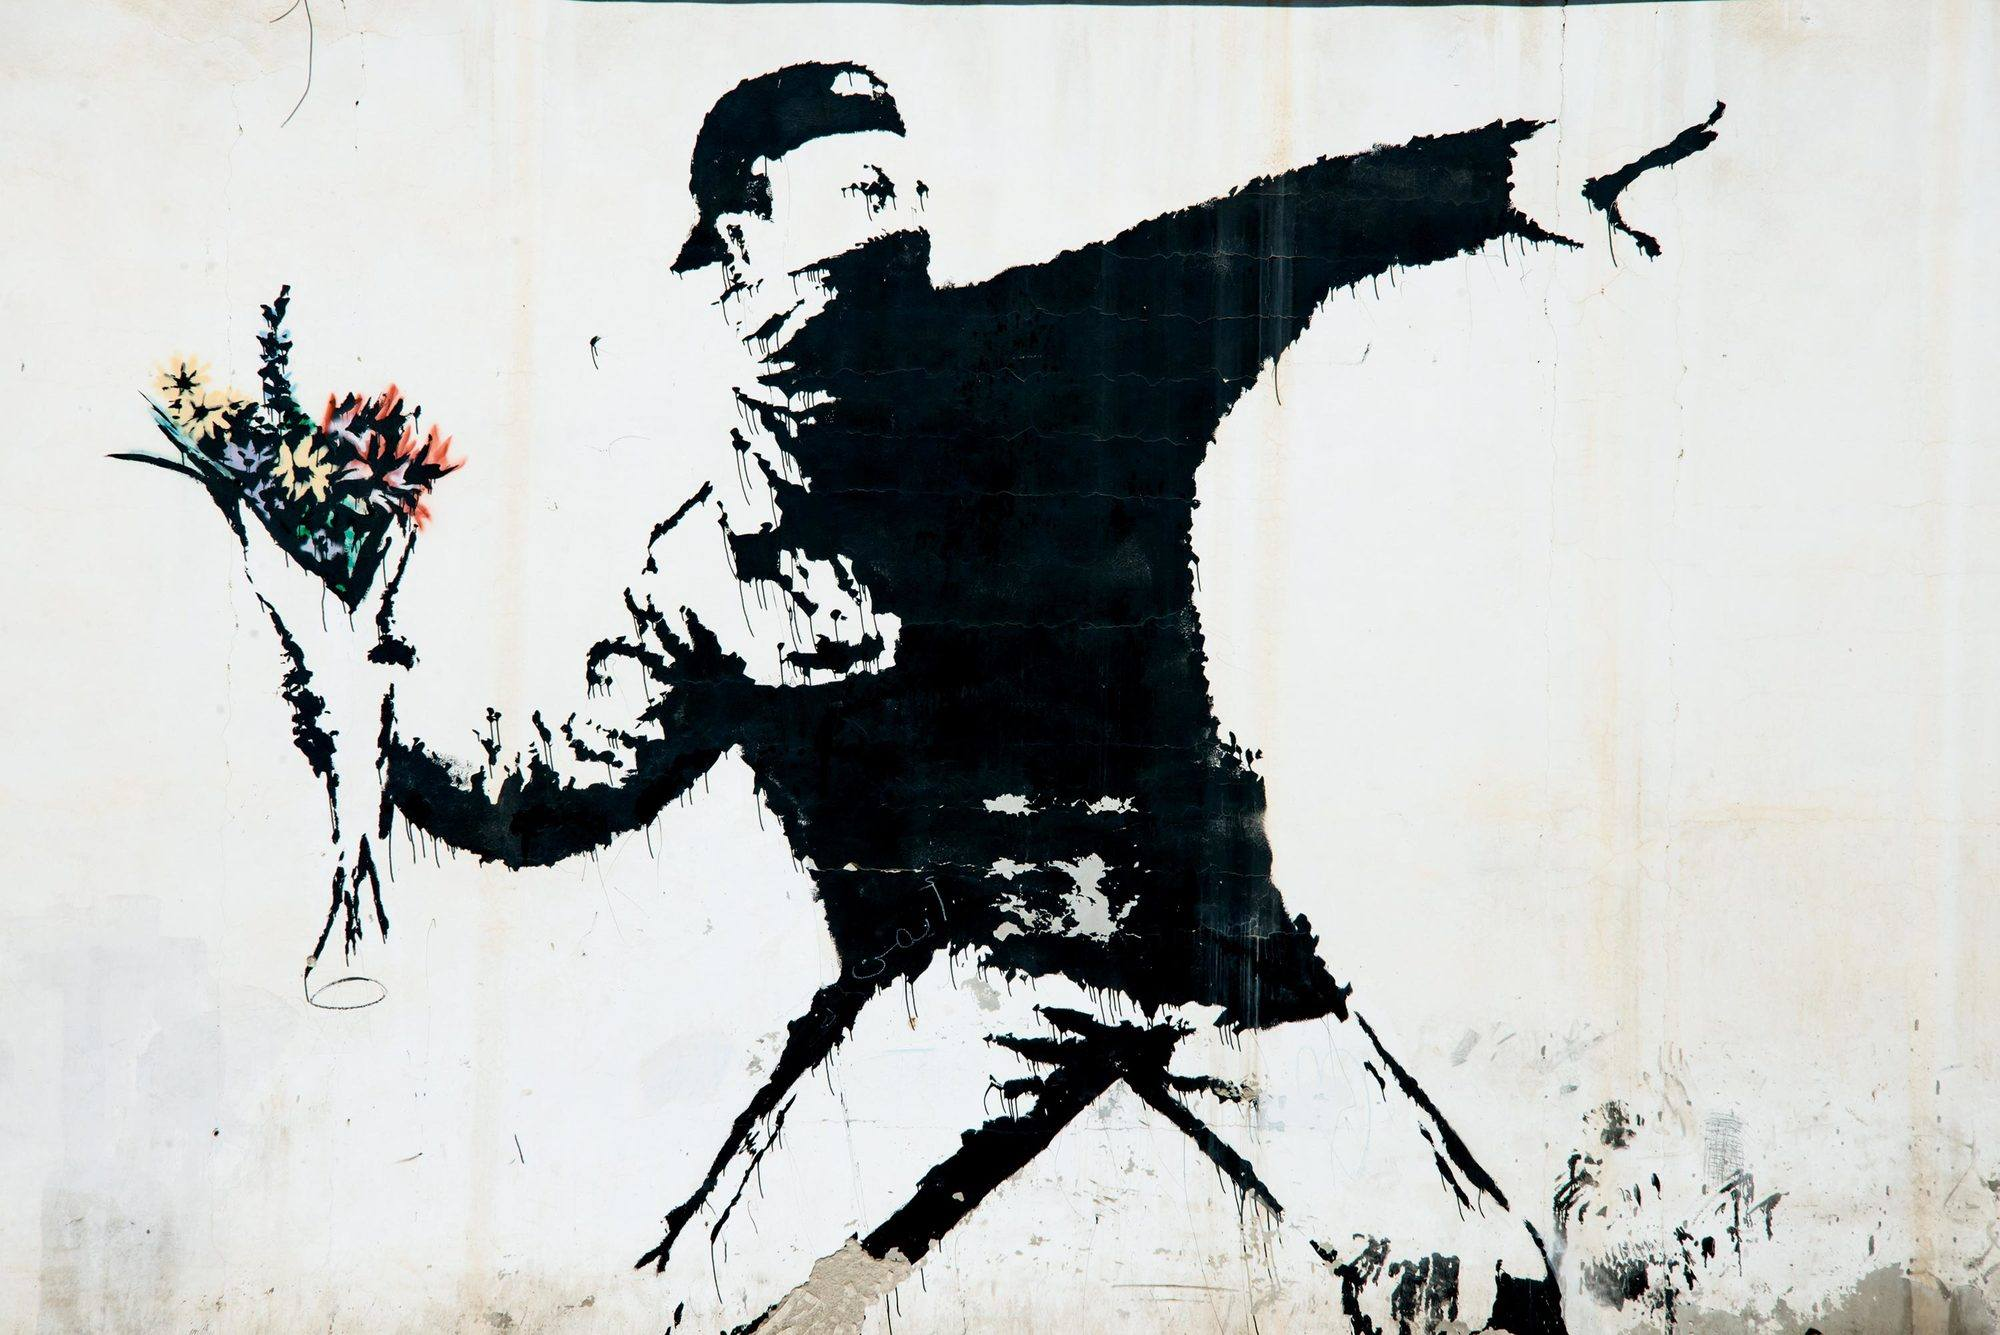 Rage, Flower thrower